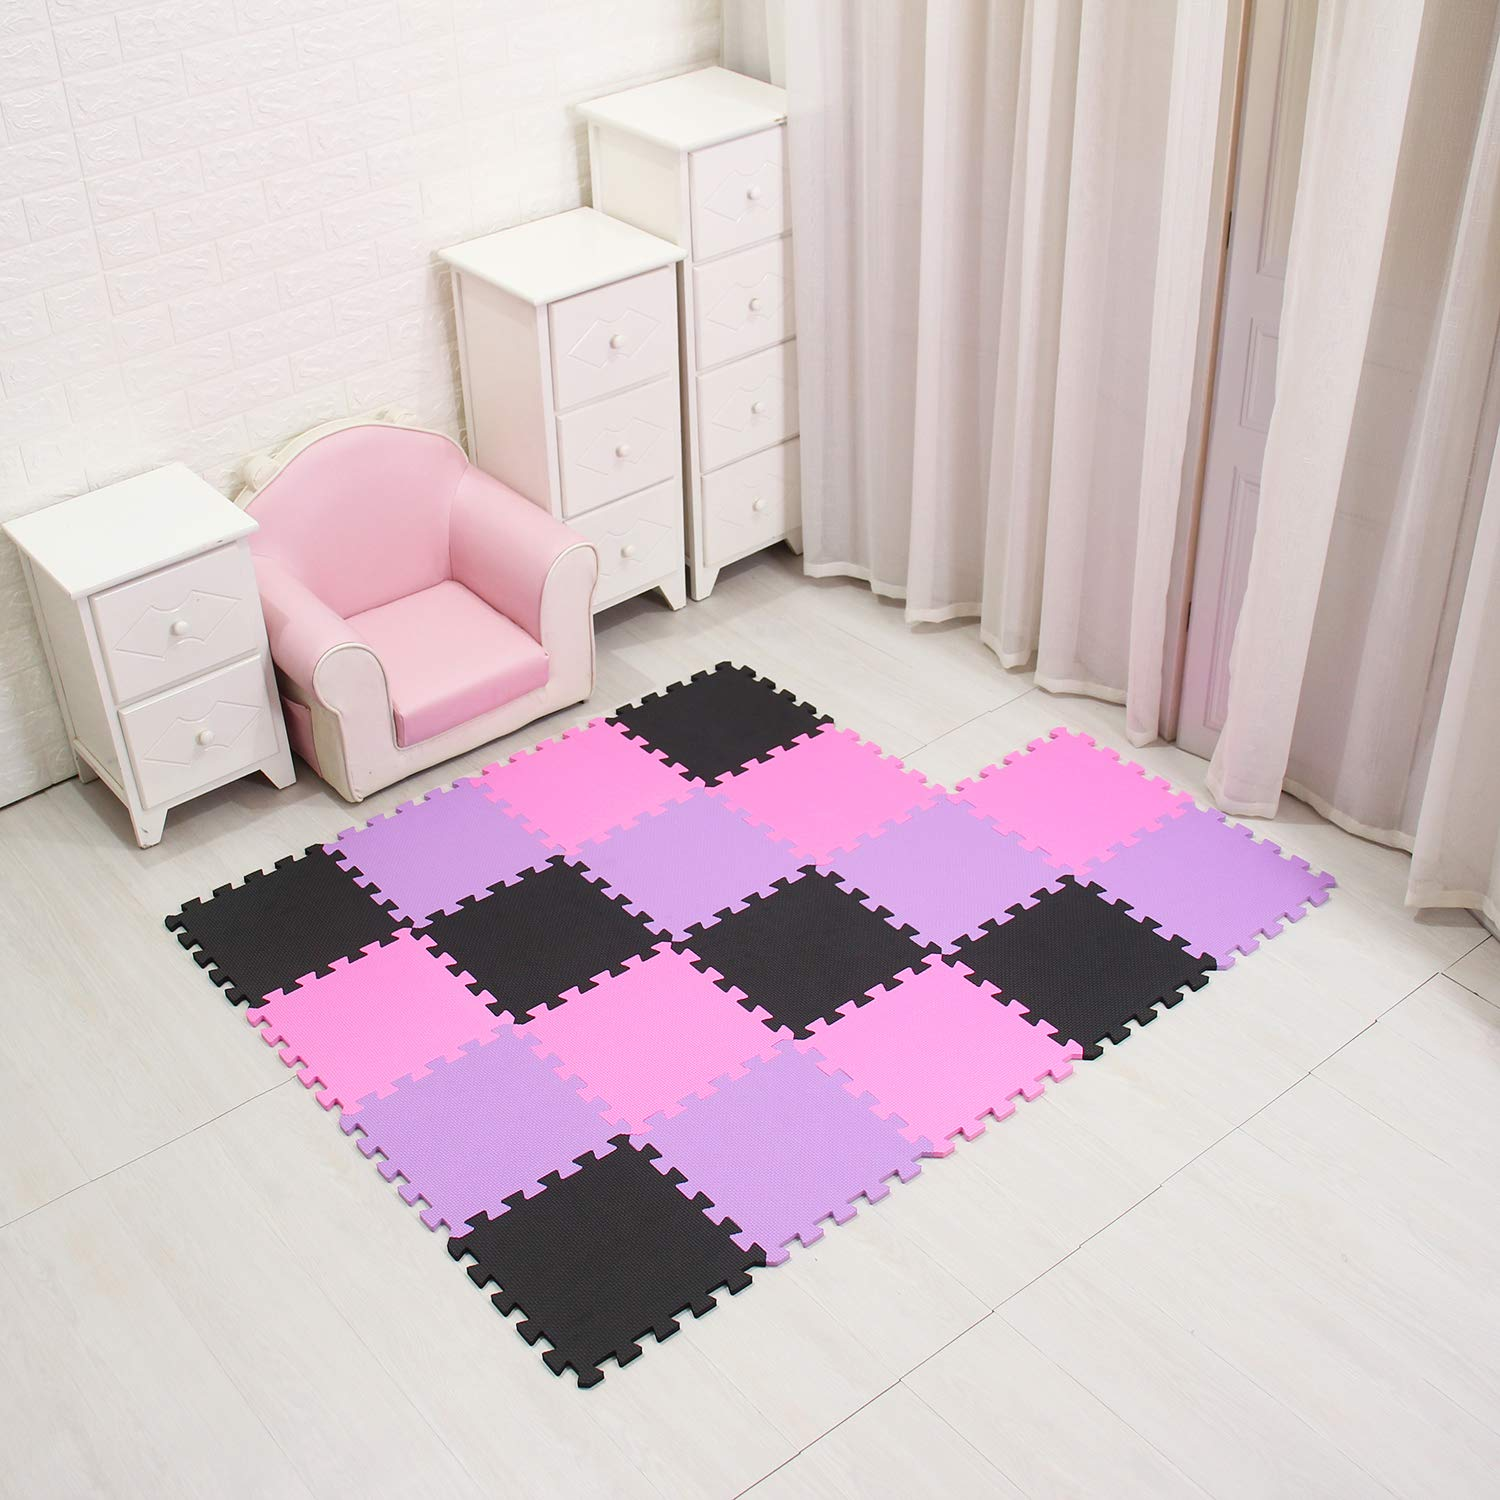 MQIAOHAM Children Puzzle mat Play mat Squares Play mat Tiles Baby mats for Floor Puzzle mat Soft Play mats Girl playmat Carpet Interlocking Foam Floor mats for Baby Pink Black Purple 103104111